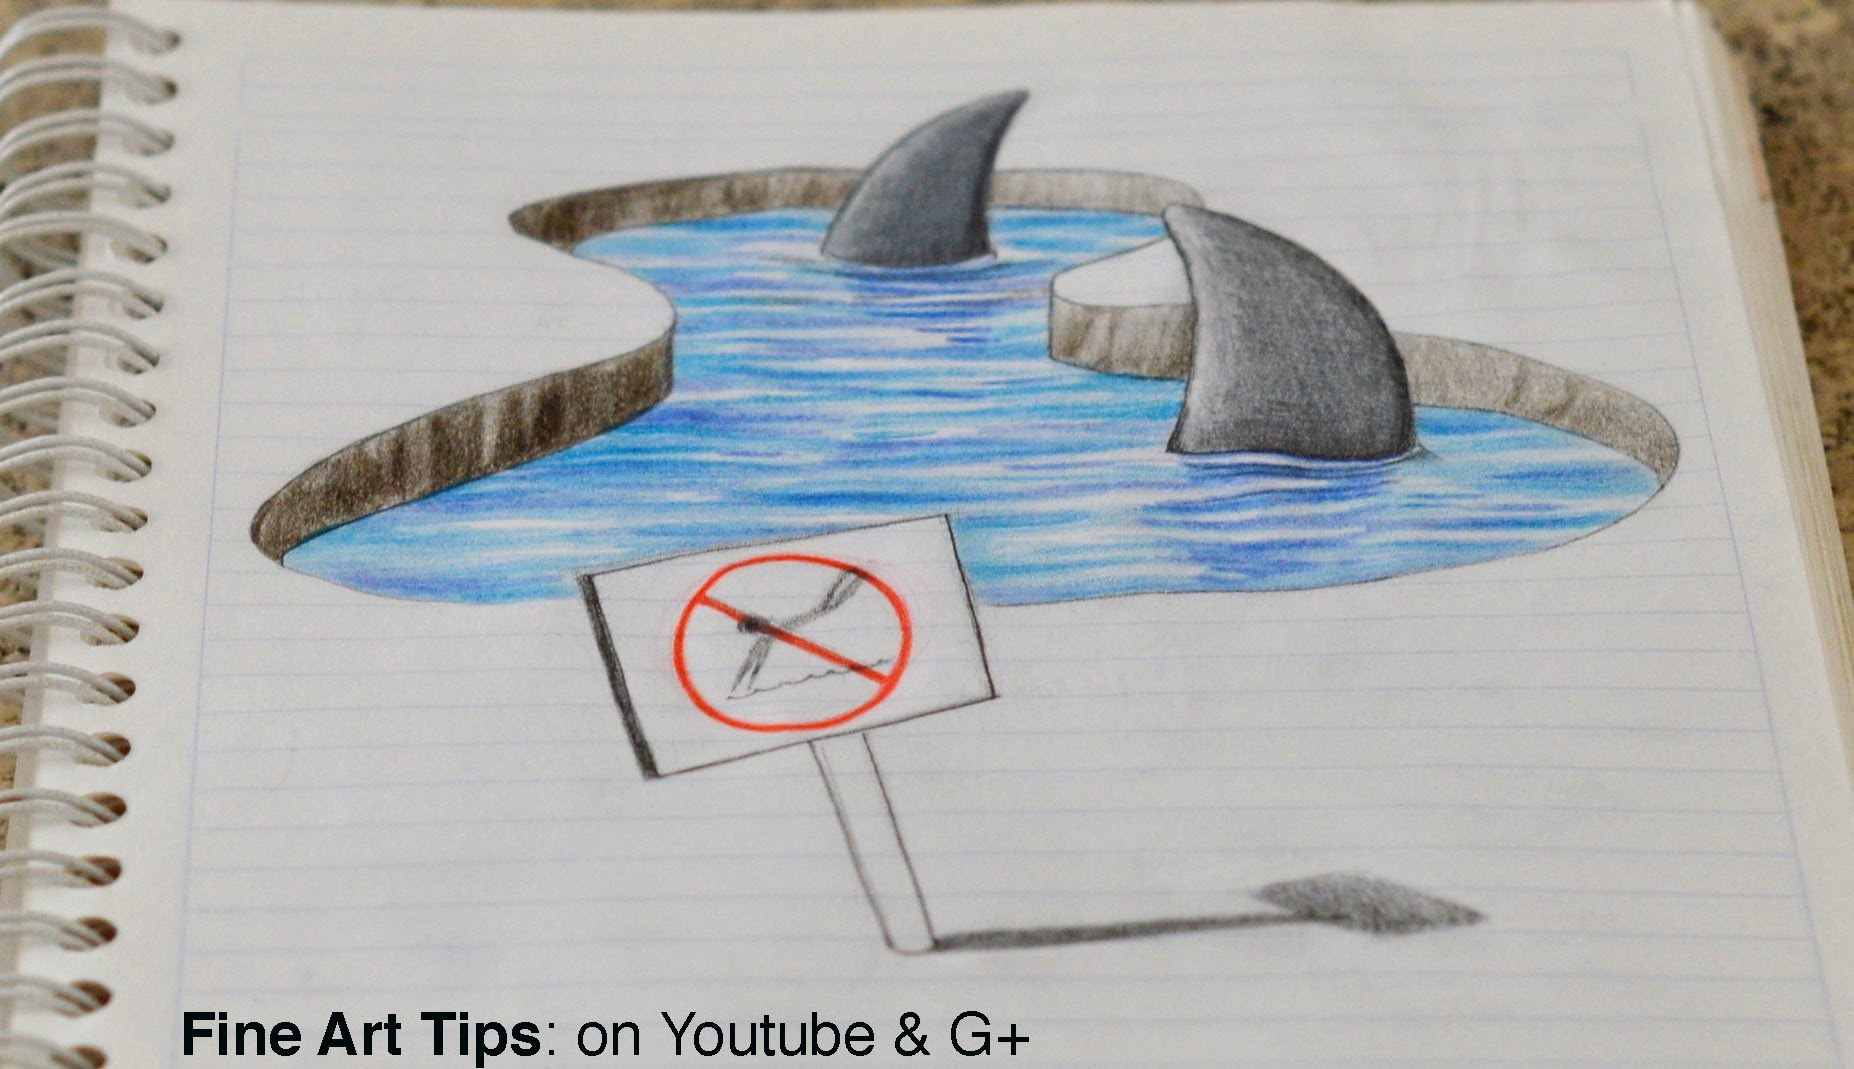 Drawn notebook art My Notebook! Anamorphic YouTube Drawing